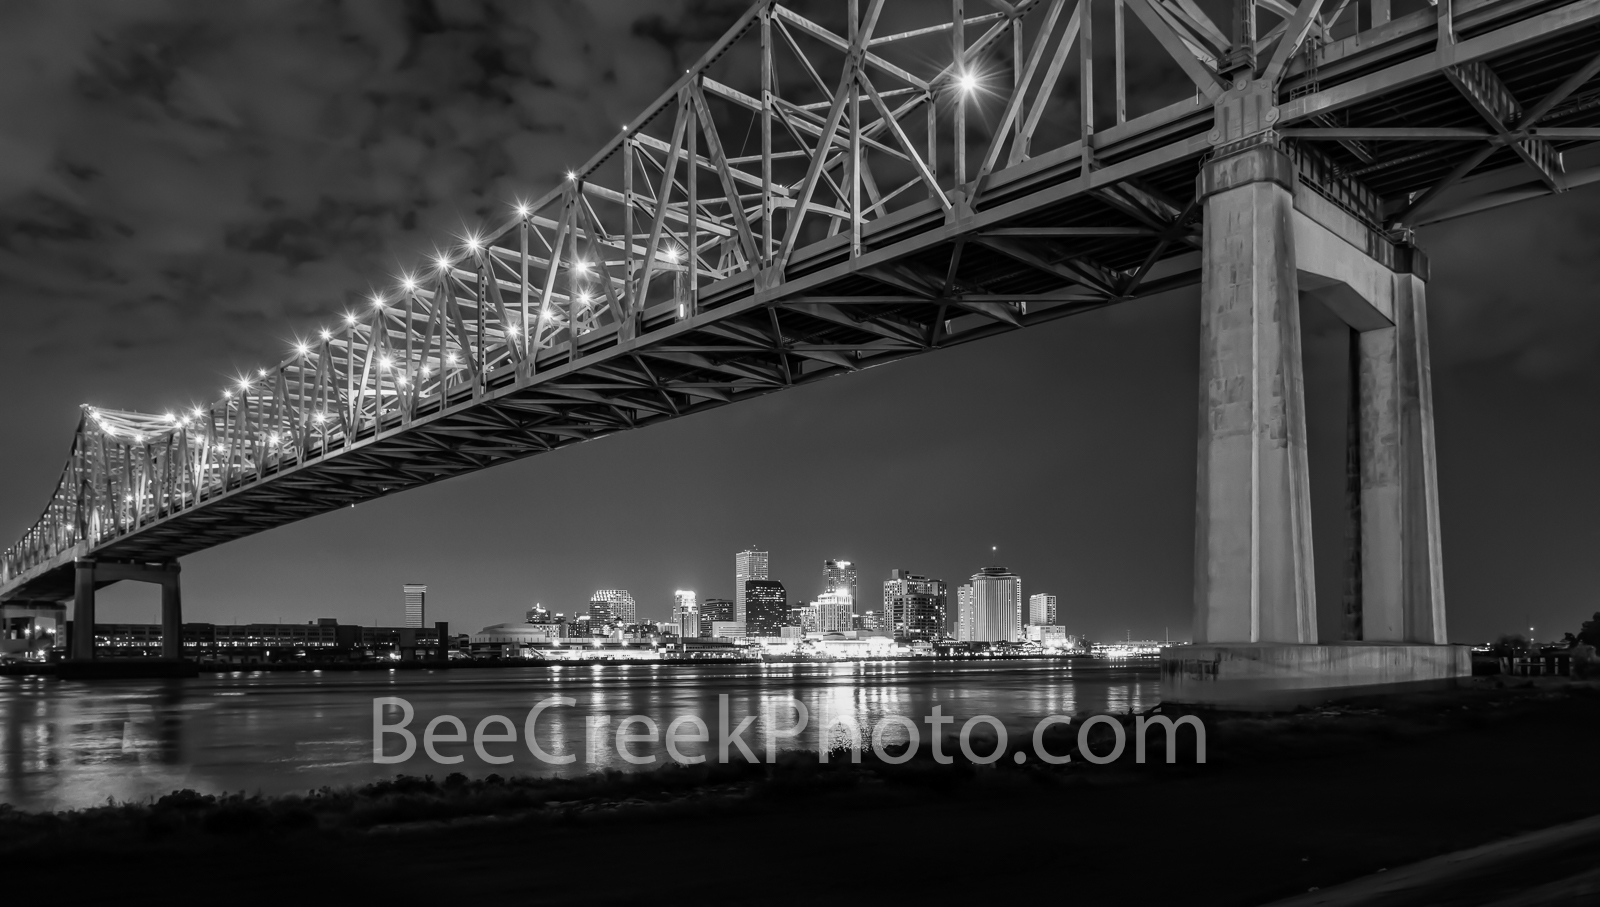 New Orleans, skyline, skylines, mississippi,  river bridge, night, reflections, cityscape, cityscapes, urban, lights, water,, photo